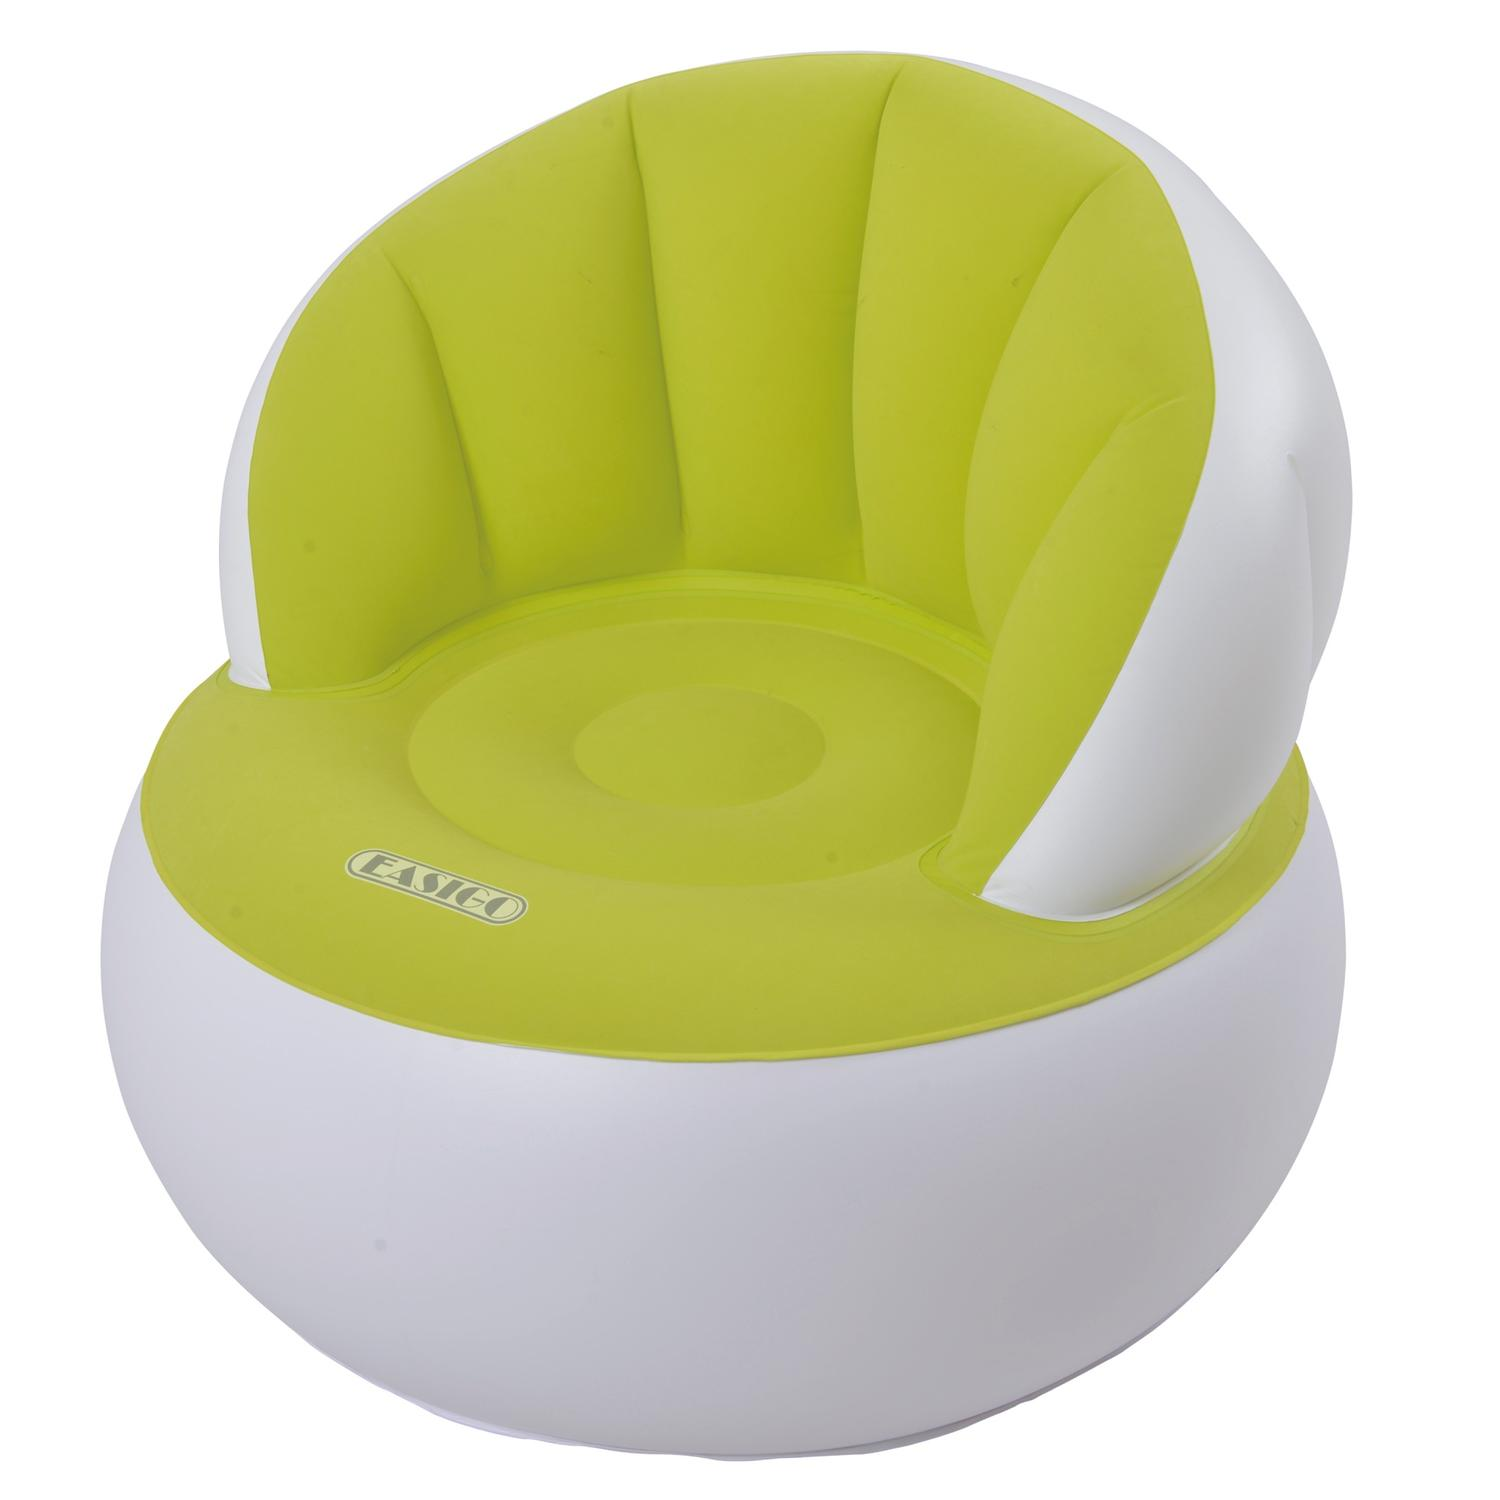 33.5 Lime Green and White Decorative Indoor Inflatable Adult Armchair by Pool Central